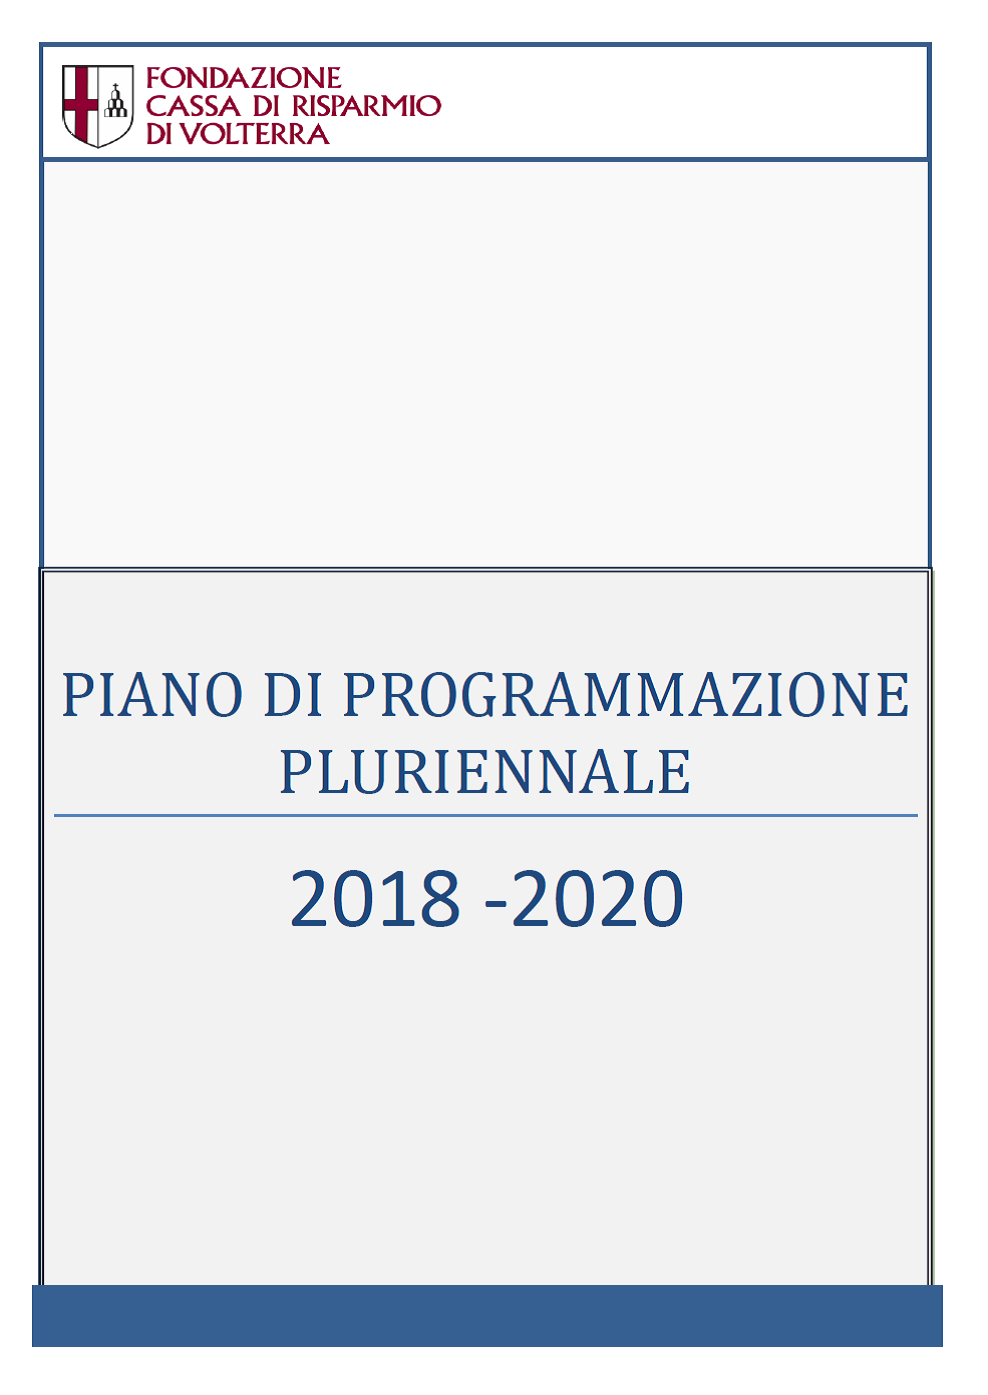 immagine PPP 2018-2020